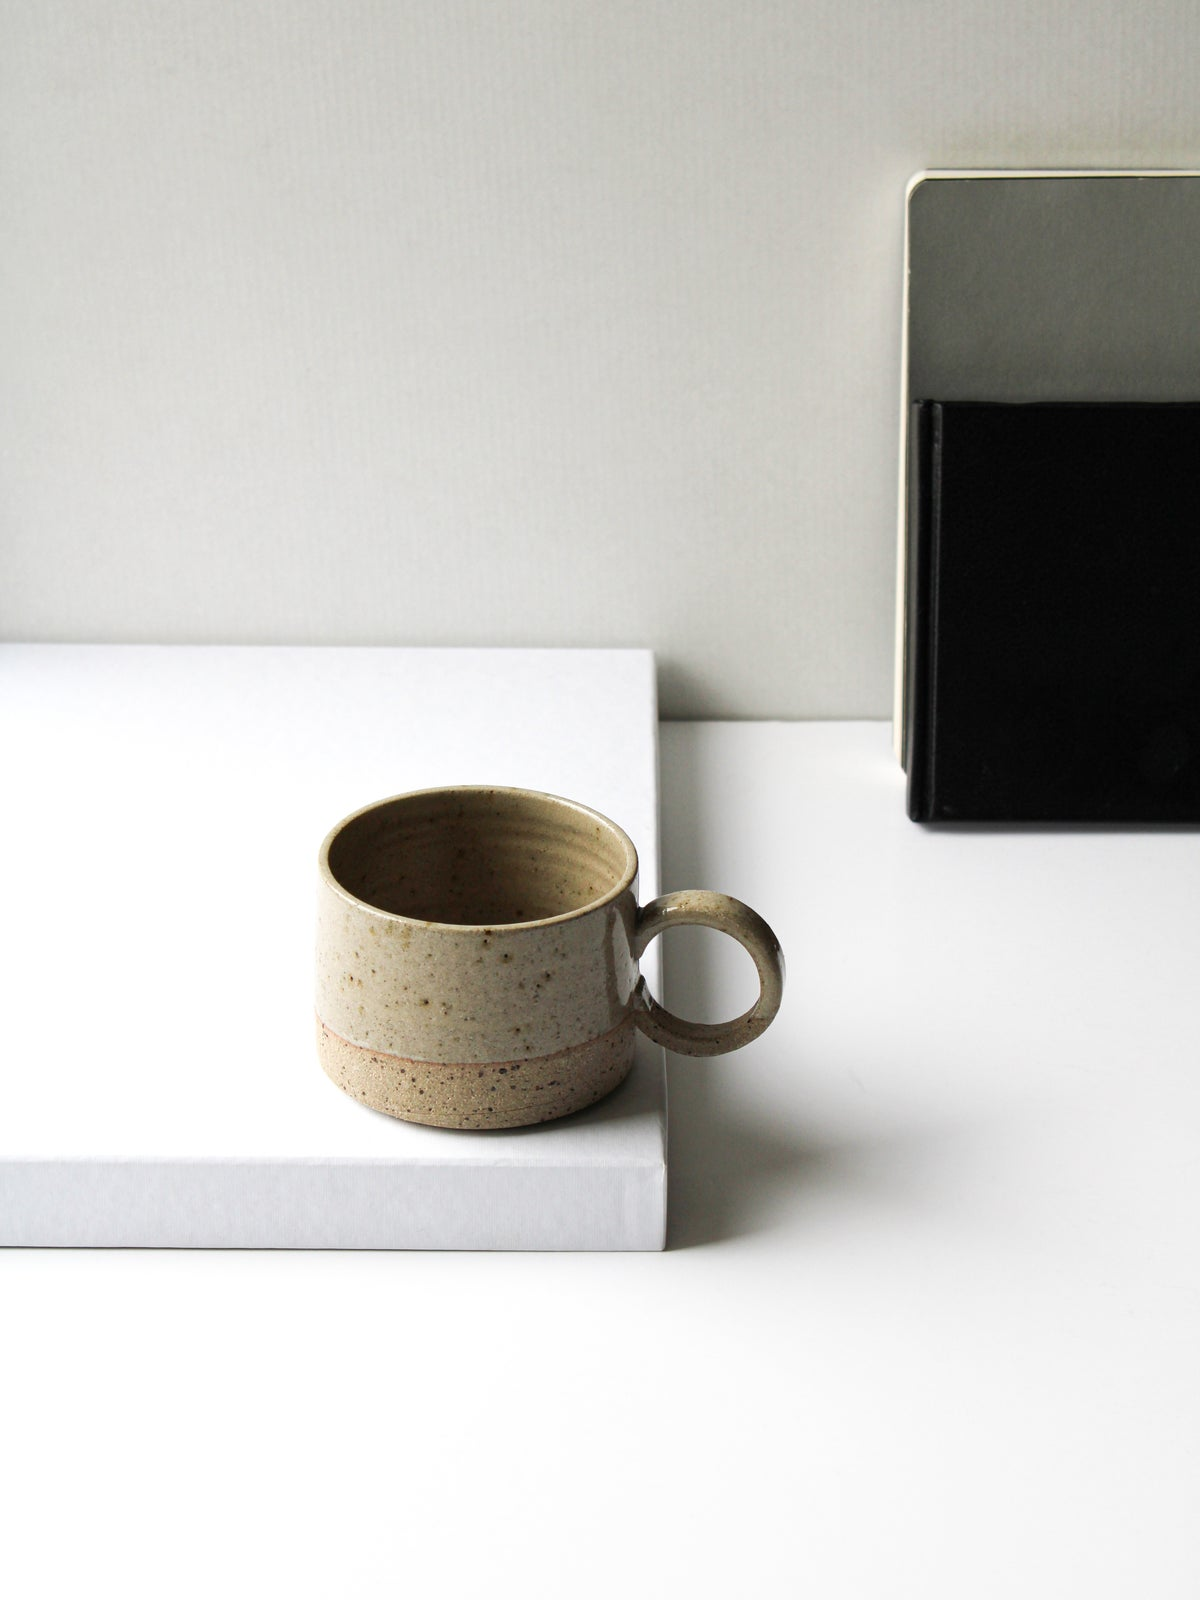 Image of handled mug in transparent